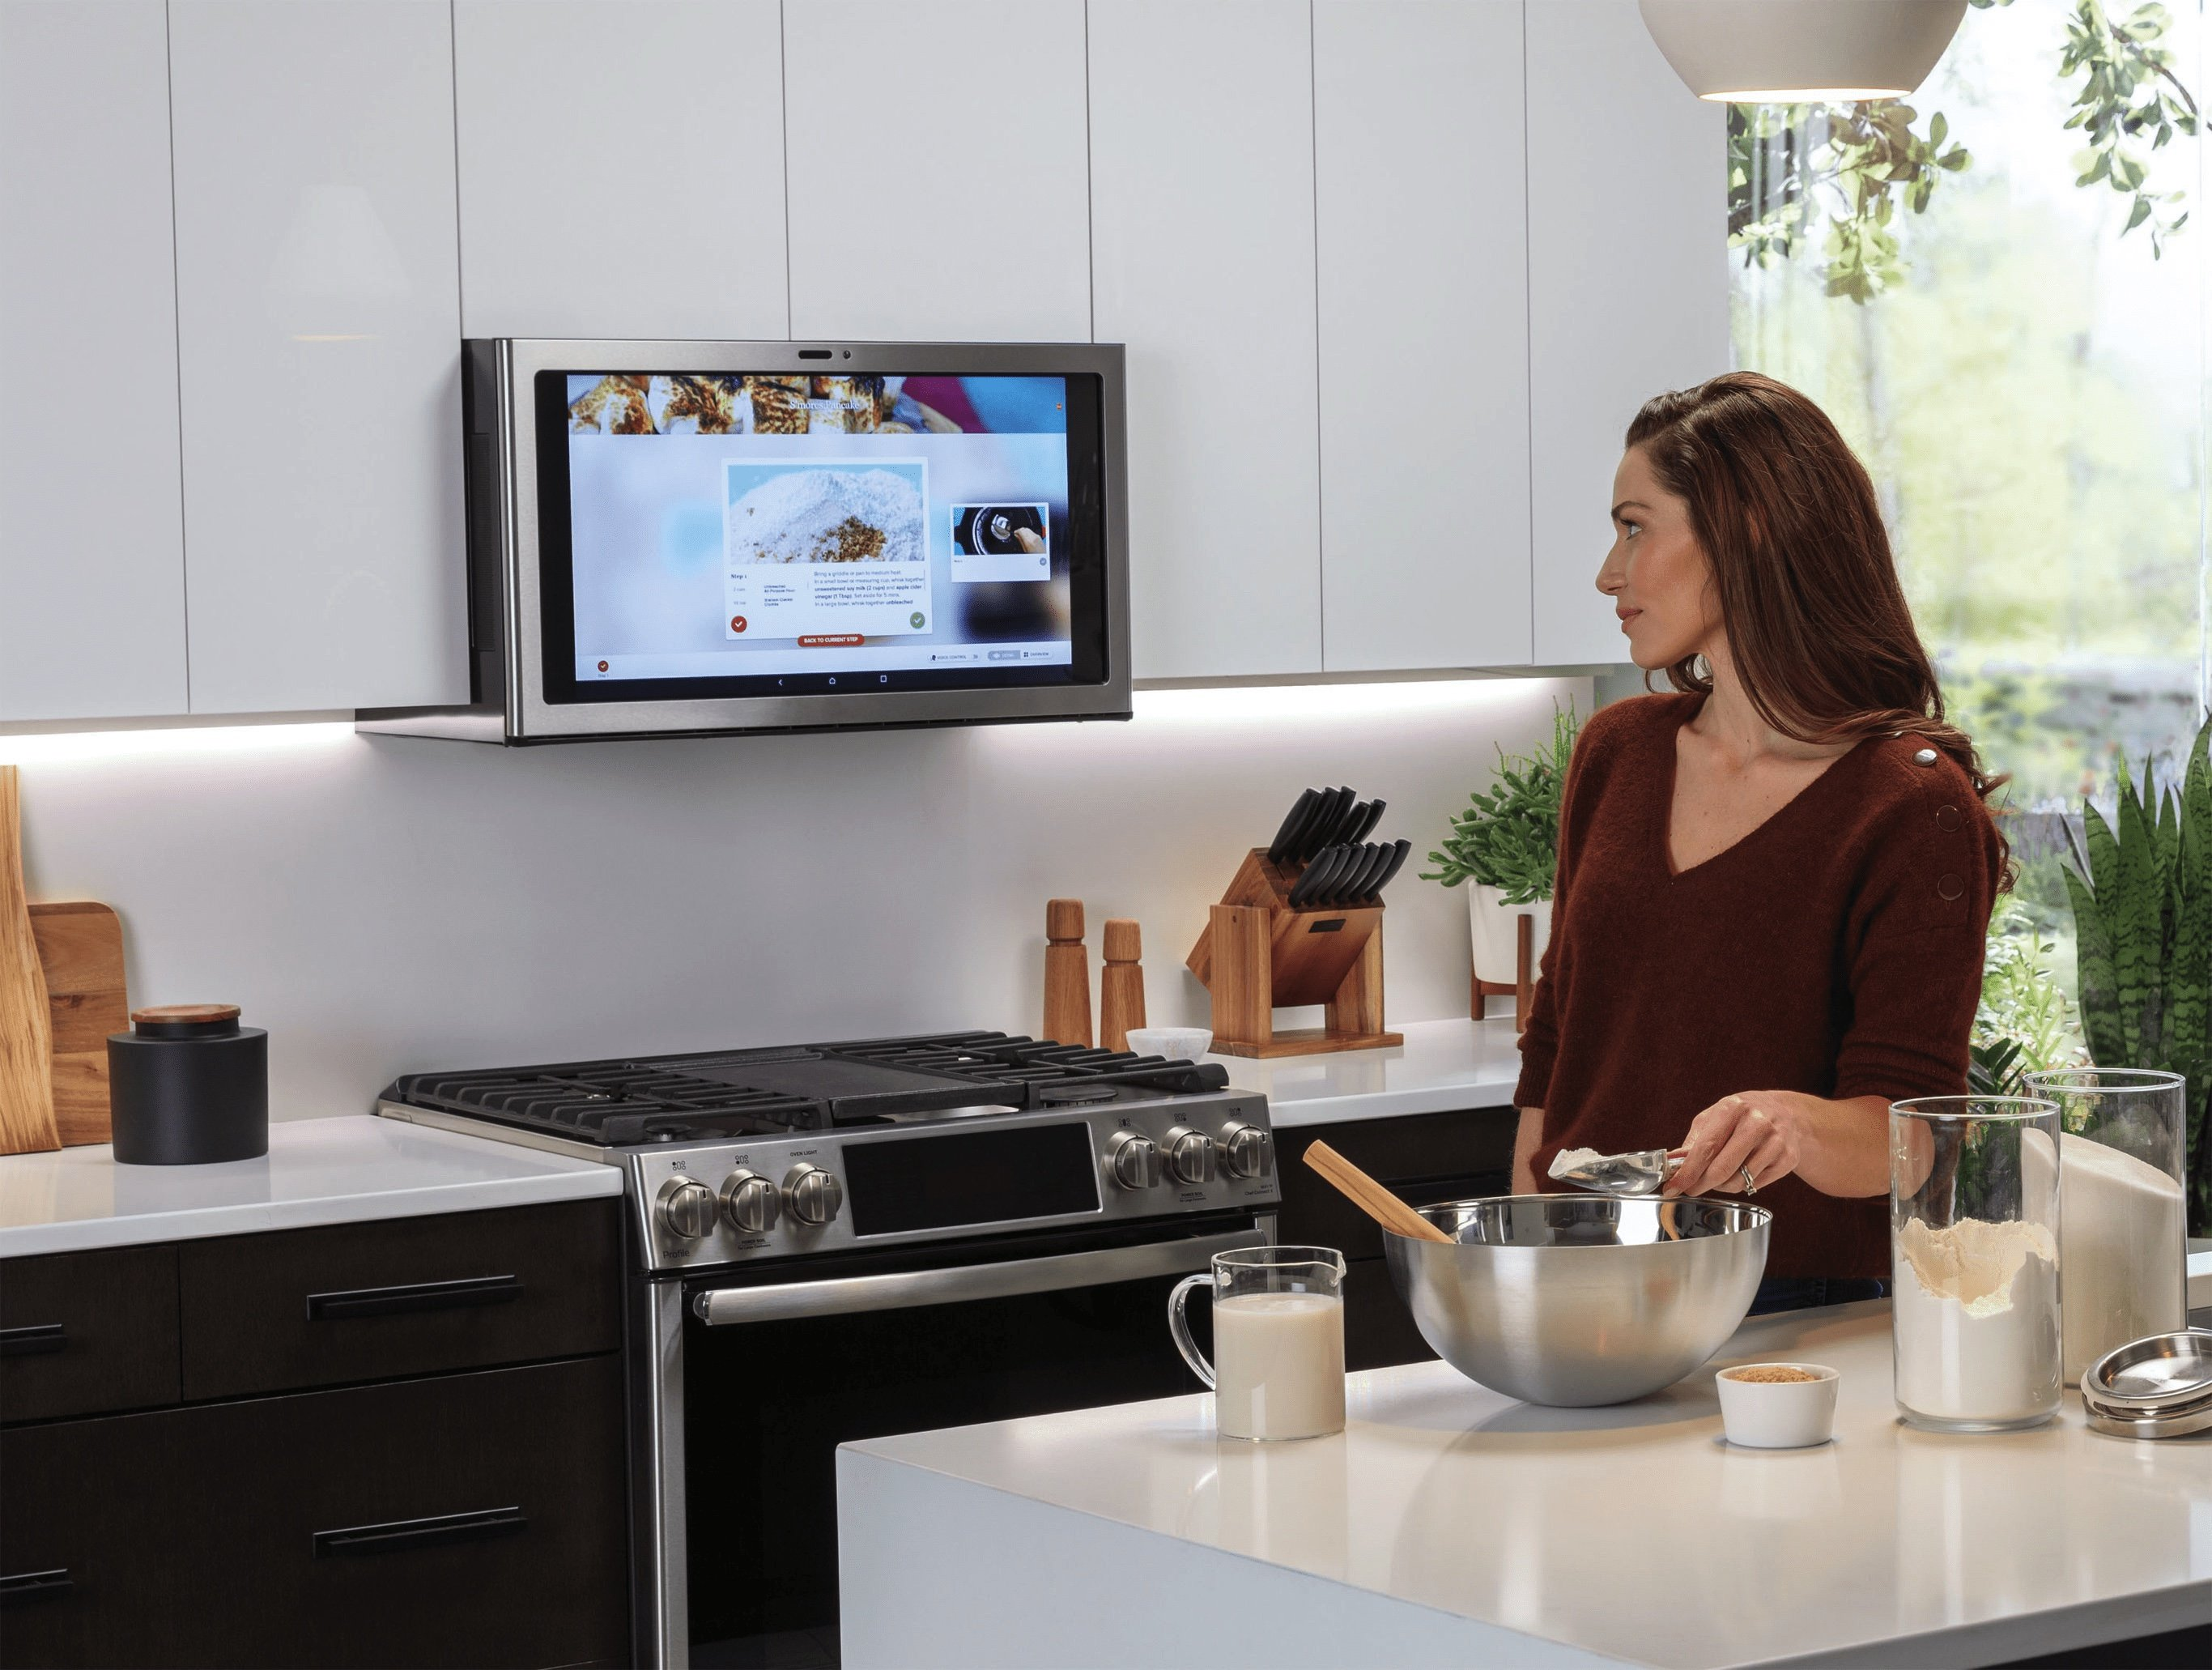 Best Connected Devices To Make Your Kitchen Smarter Gearbrain